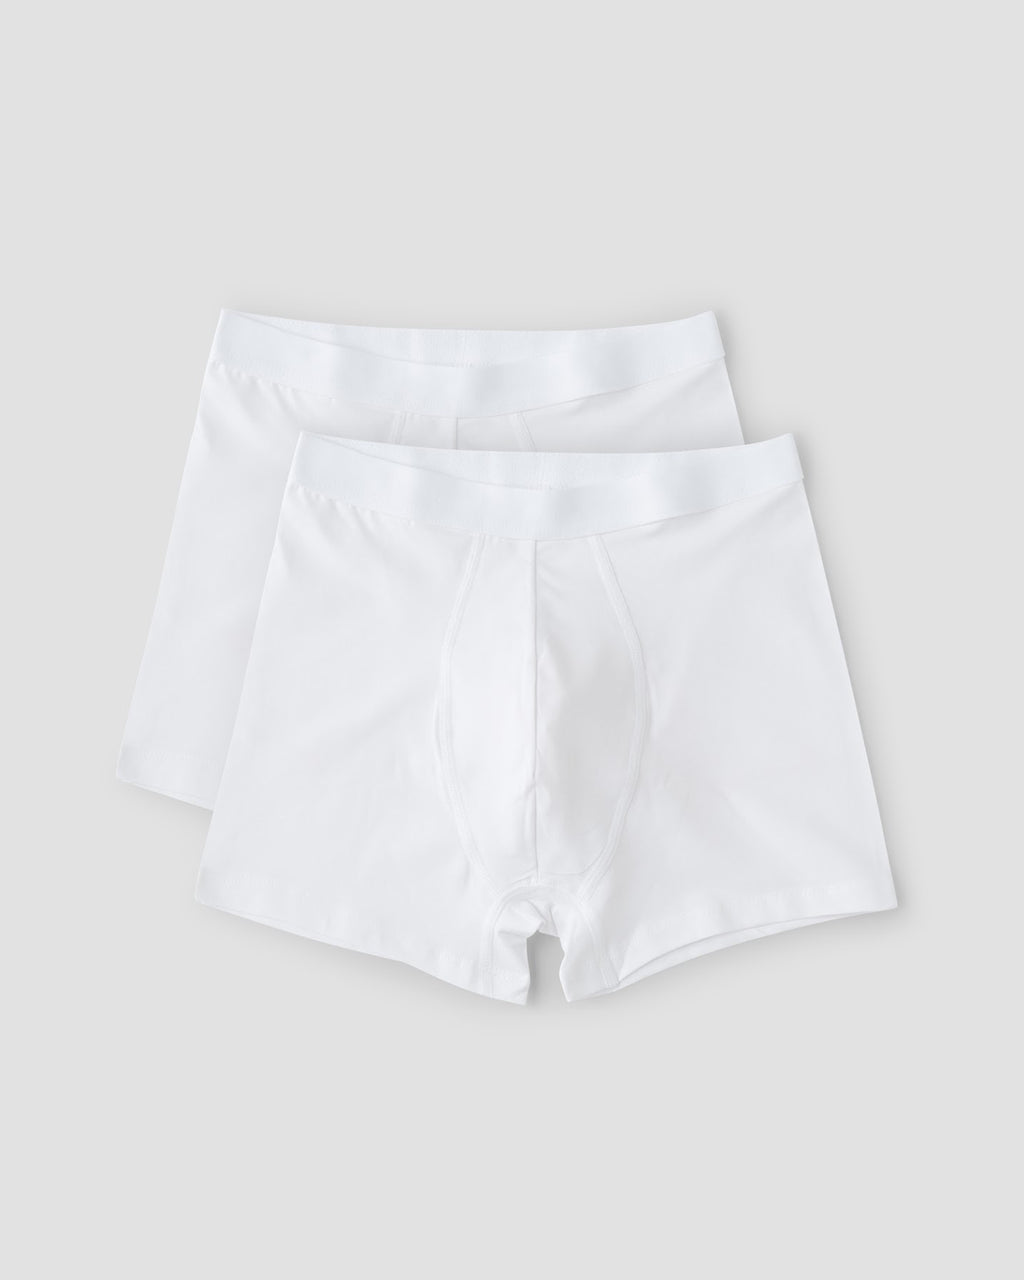 SilverTech (Everyday) Boxers 2-pack, White